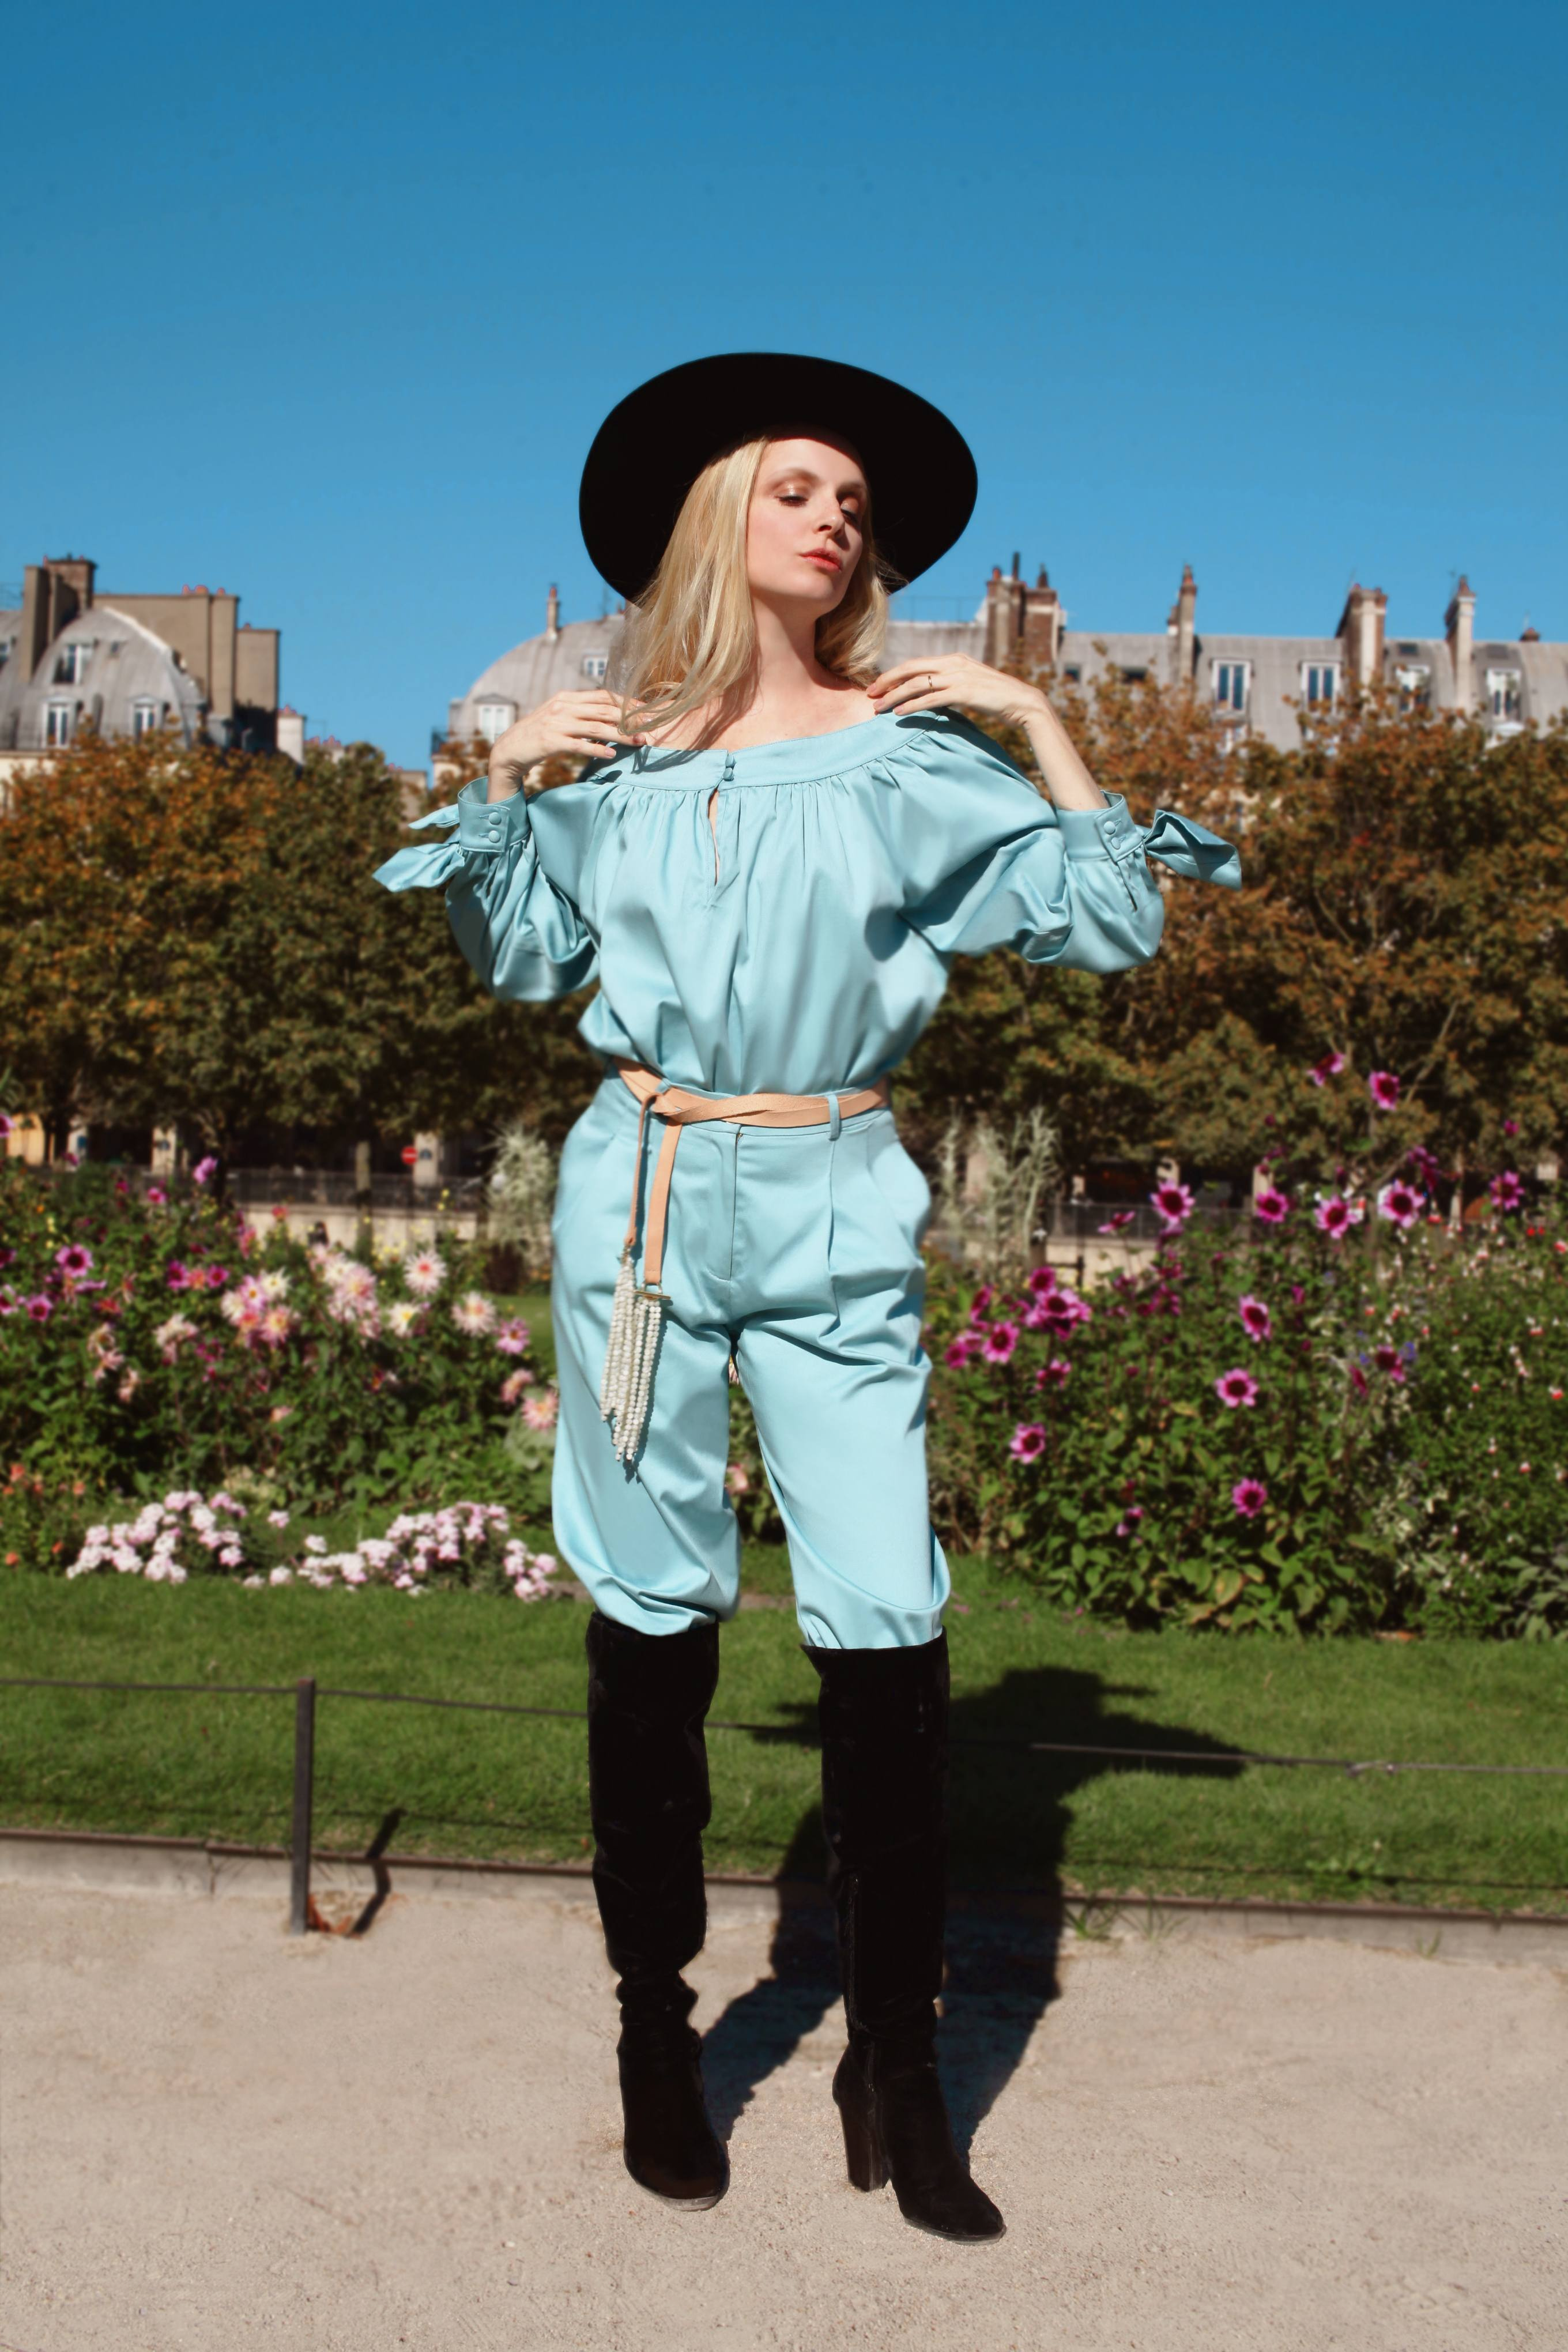 Sofia Achaval De Montaigu wearing Desnuda top in Light Blue Cotton Satin paired with Al Boleo pants in Light Blue Cotton Satin and styled with the Tientos belt